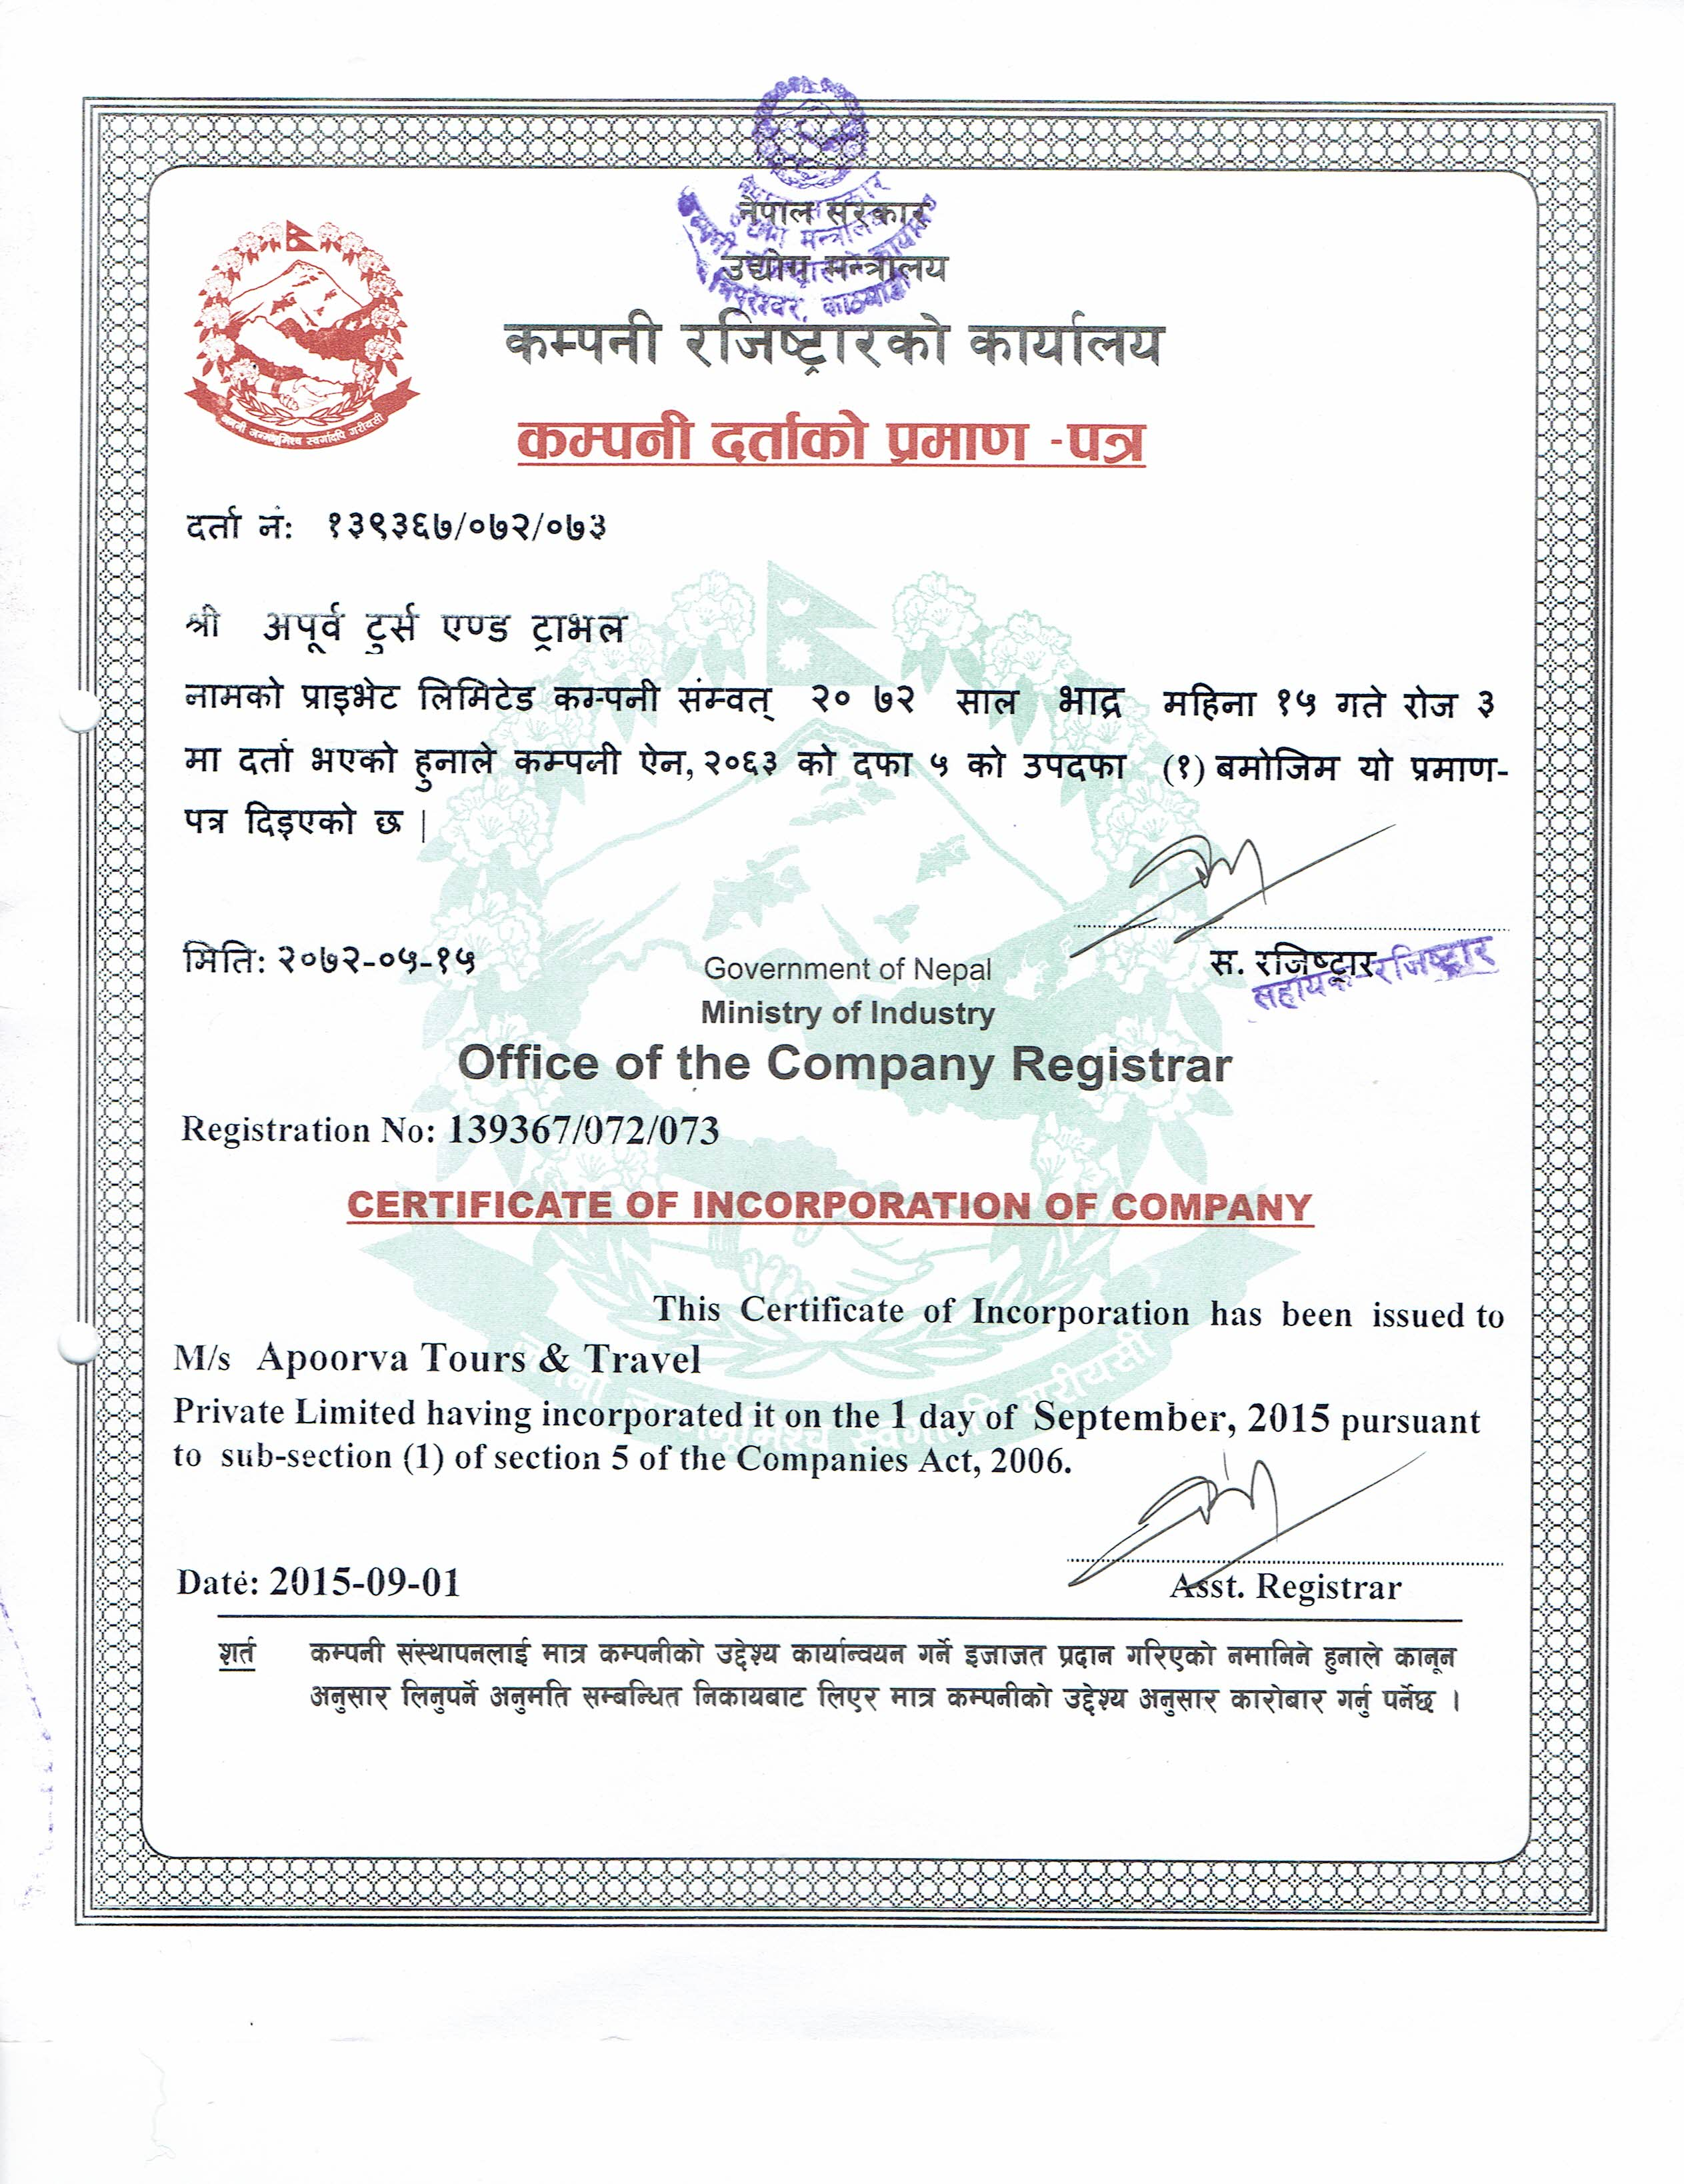 Company Registration Certificate Apoorva Tours